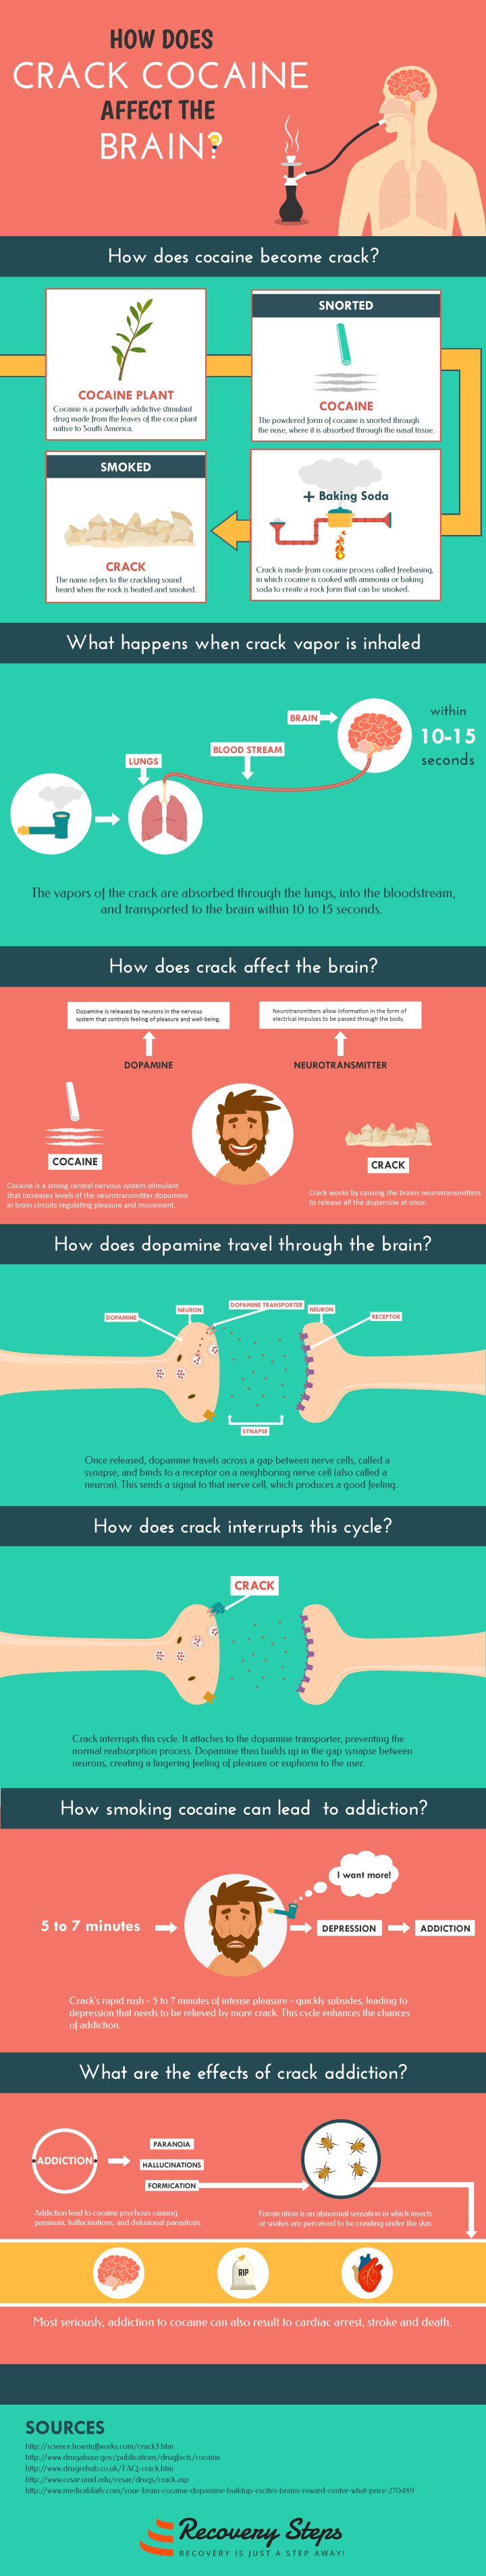 Smoking crack cocaine vapor into the lungs is as rapid as absorption into the bloodstream by injection. Recurring use of crack cocaine can cause long term changes in the brain systems which may lead to addiction. The following infographic by Recovery Steps looks at this in more detail.